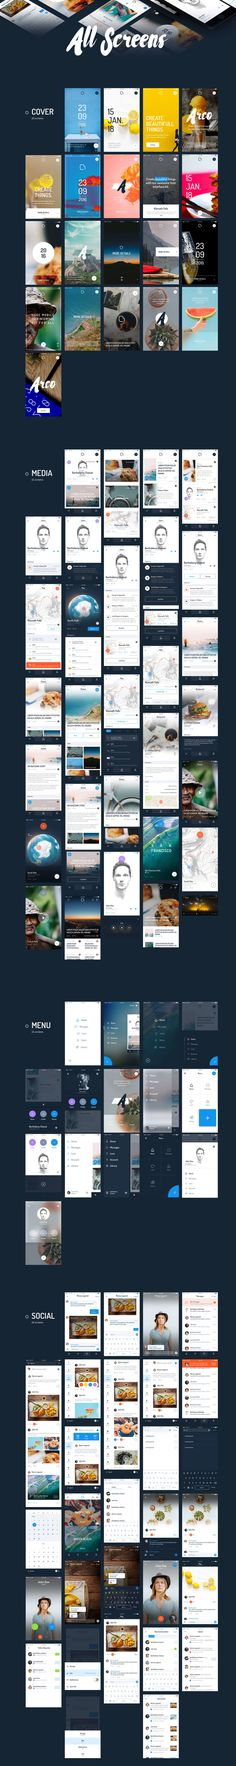 Create beautiful things with our awesome User Interface kit. It comes with 200 unique screens. Arco is a modern, clean and minimalistic UI Kit to upgrade your projects with over 800 elements to choose. Everything was made with a detail oriented style and